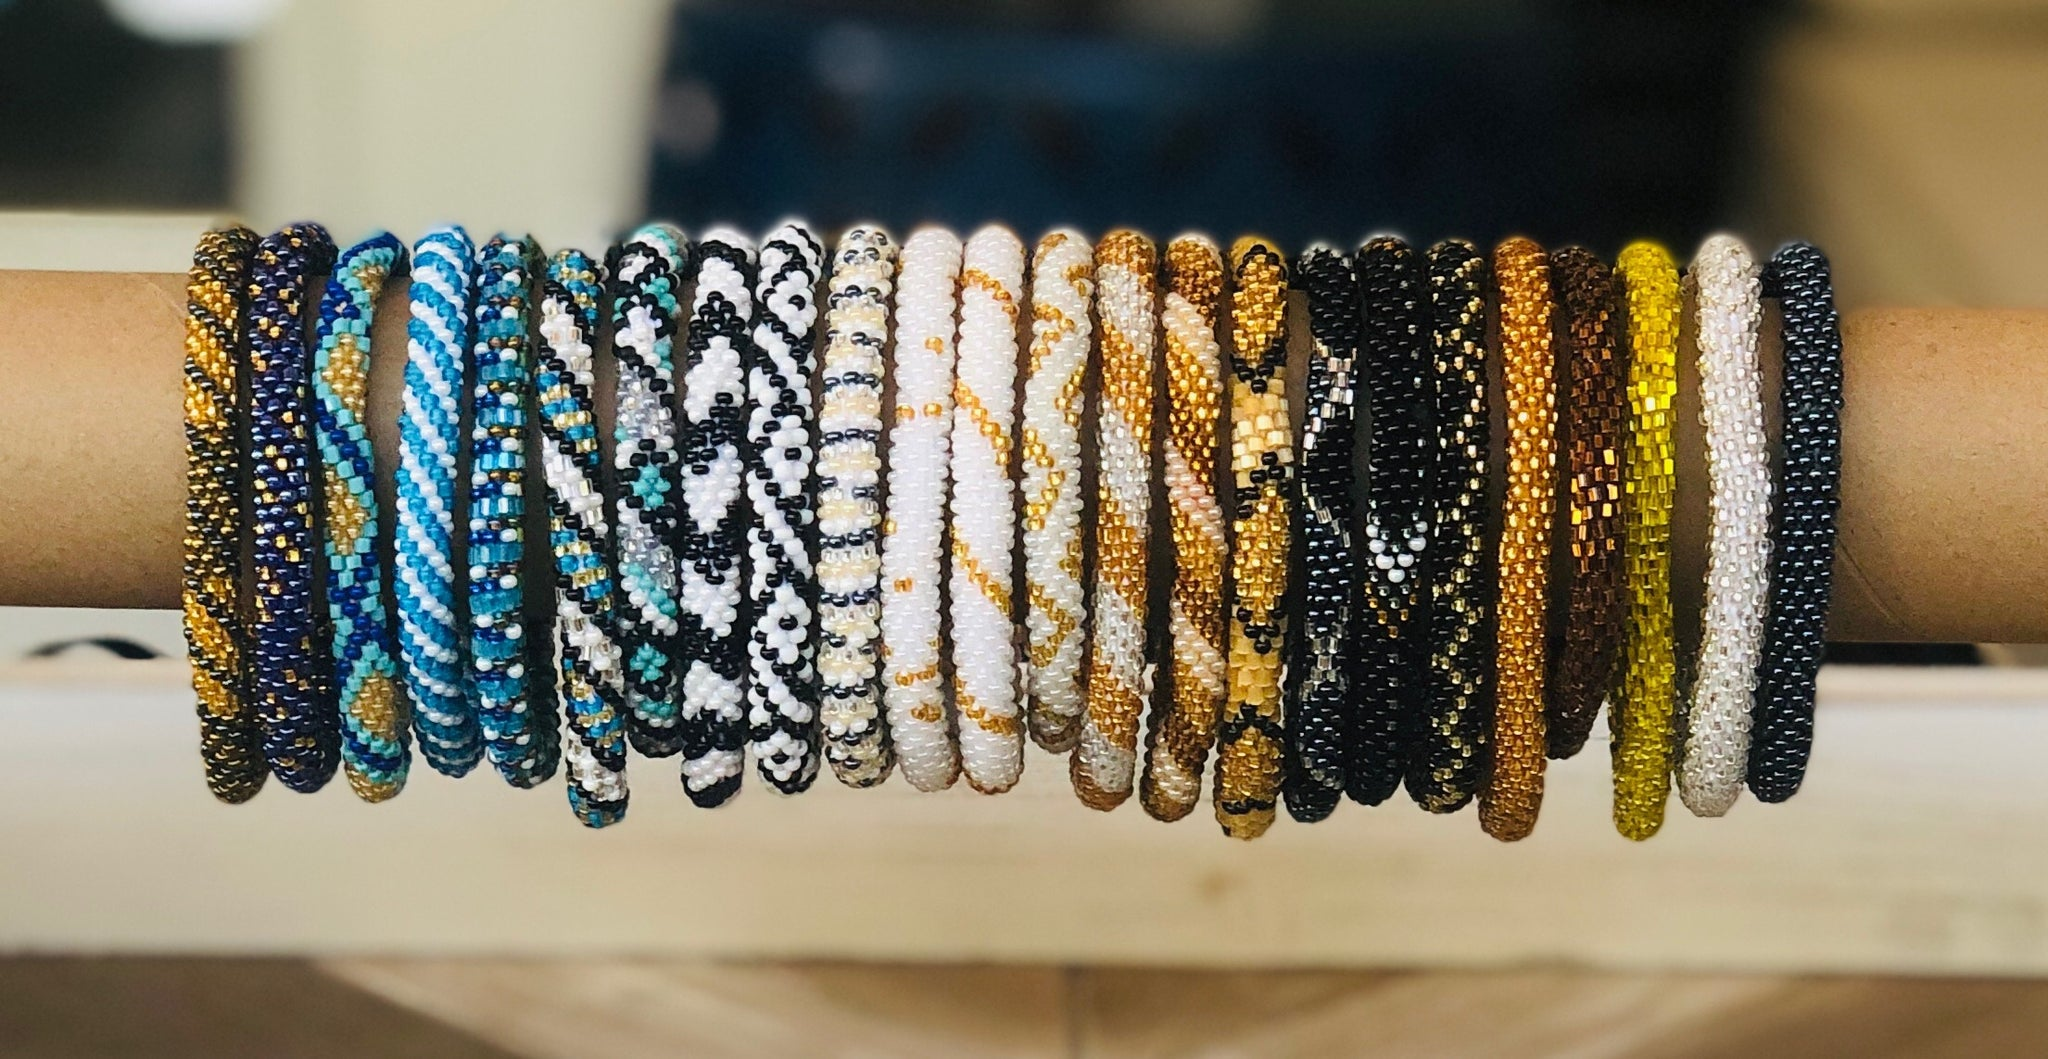 Nepal Seed Bracelets, Assorted Colors